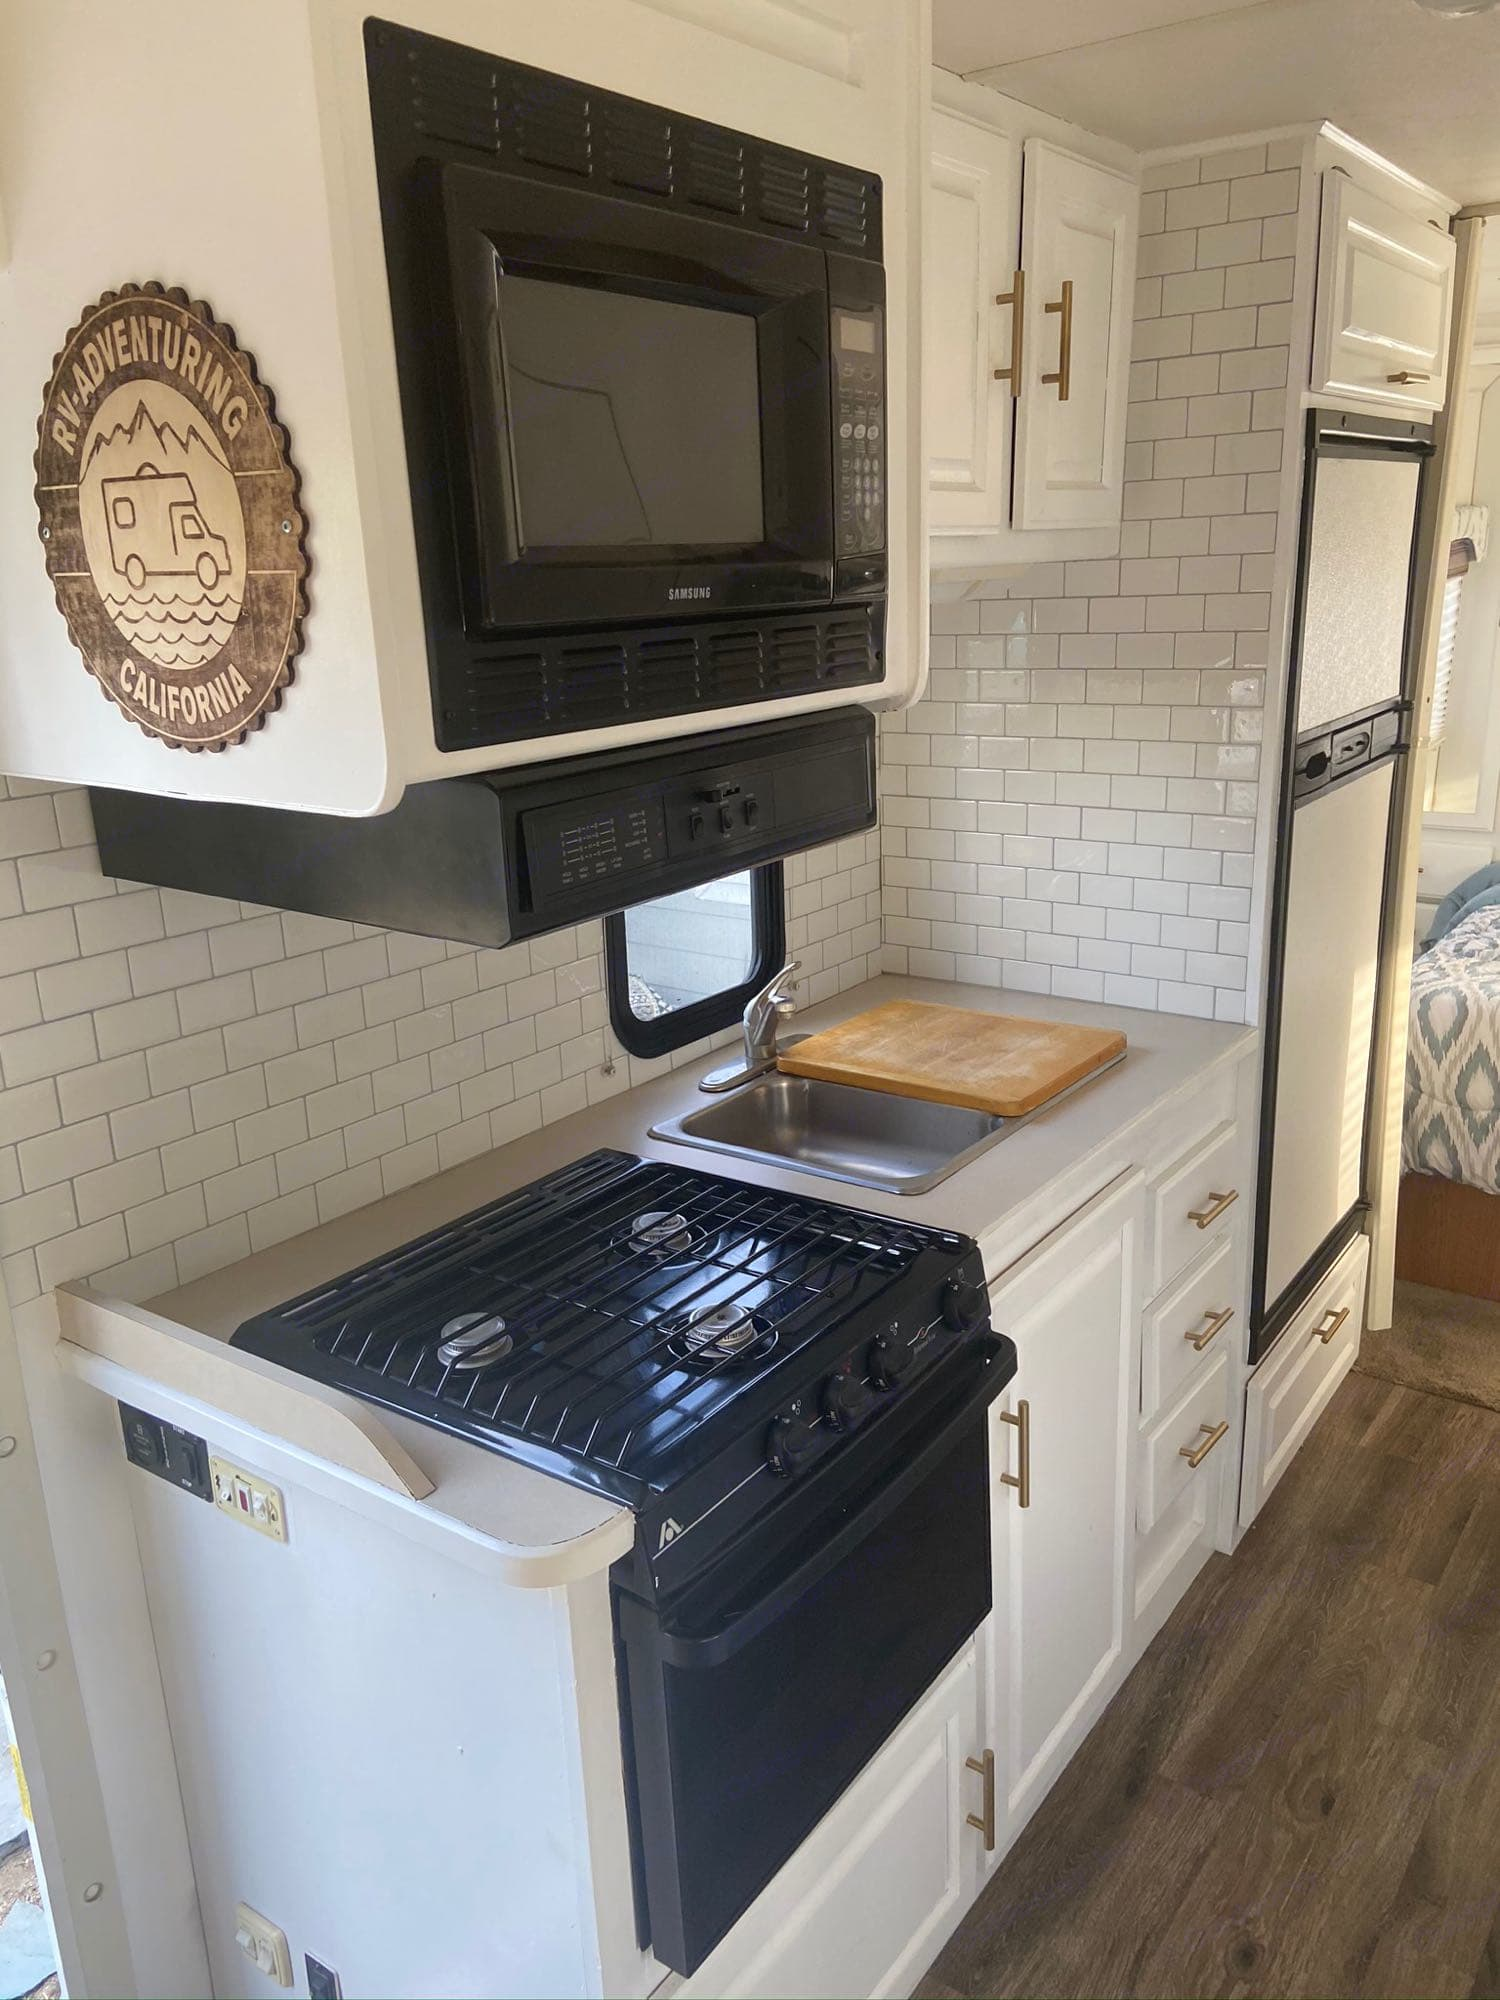 This updated kitchen interior is a bright and happy full kitchen with all the amenities.. Thor Motor Coach Four Winds Five Thousand 2004